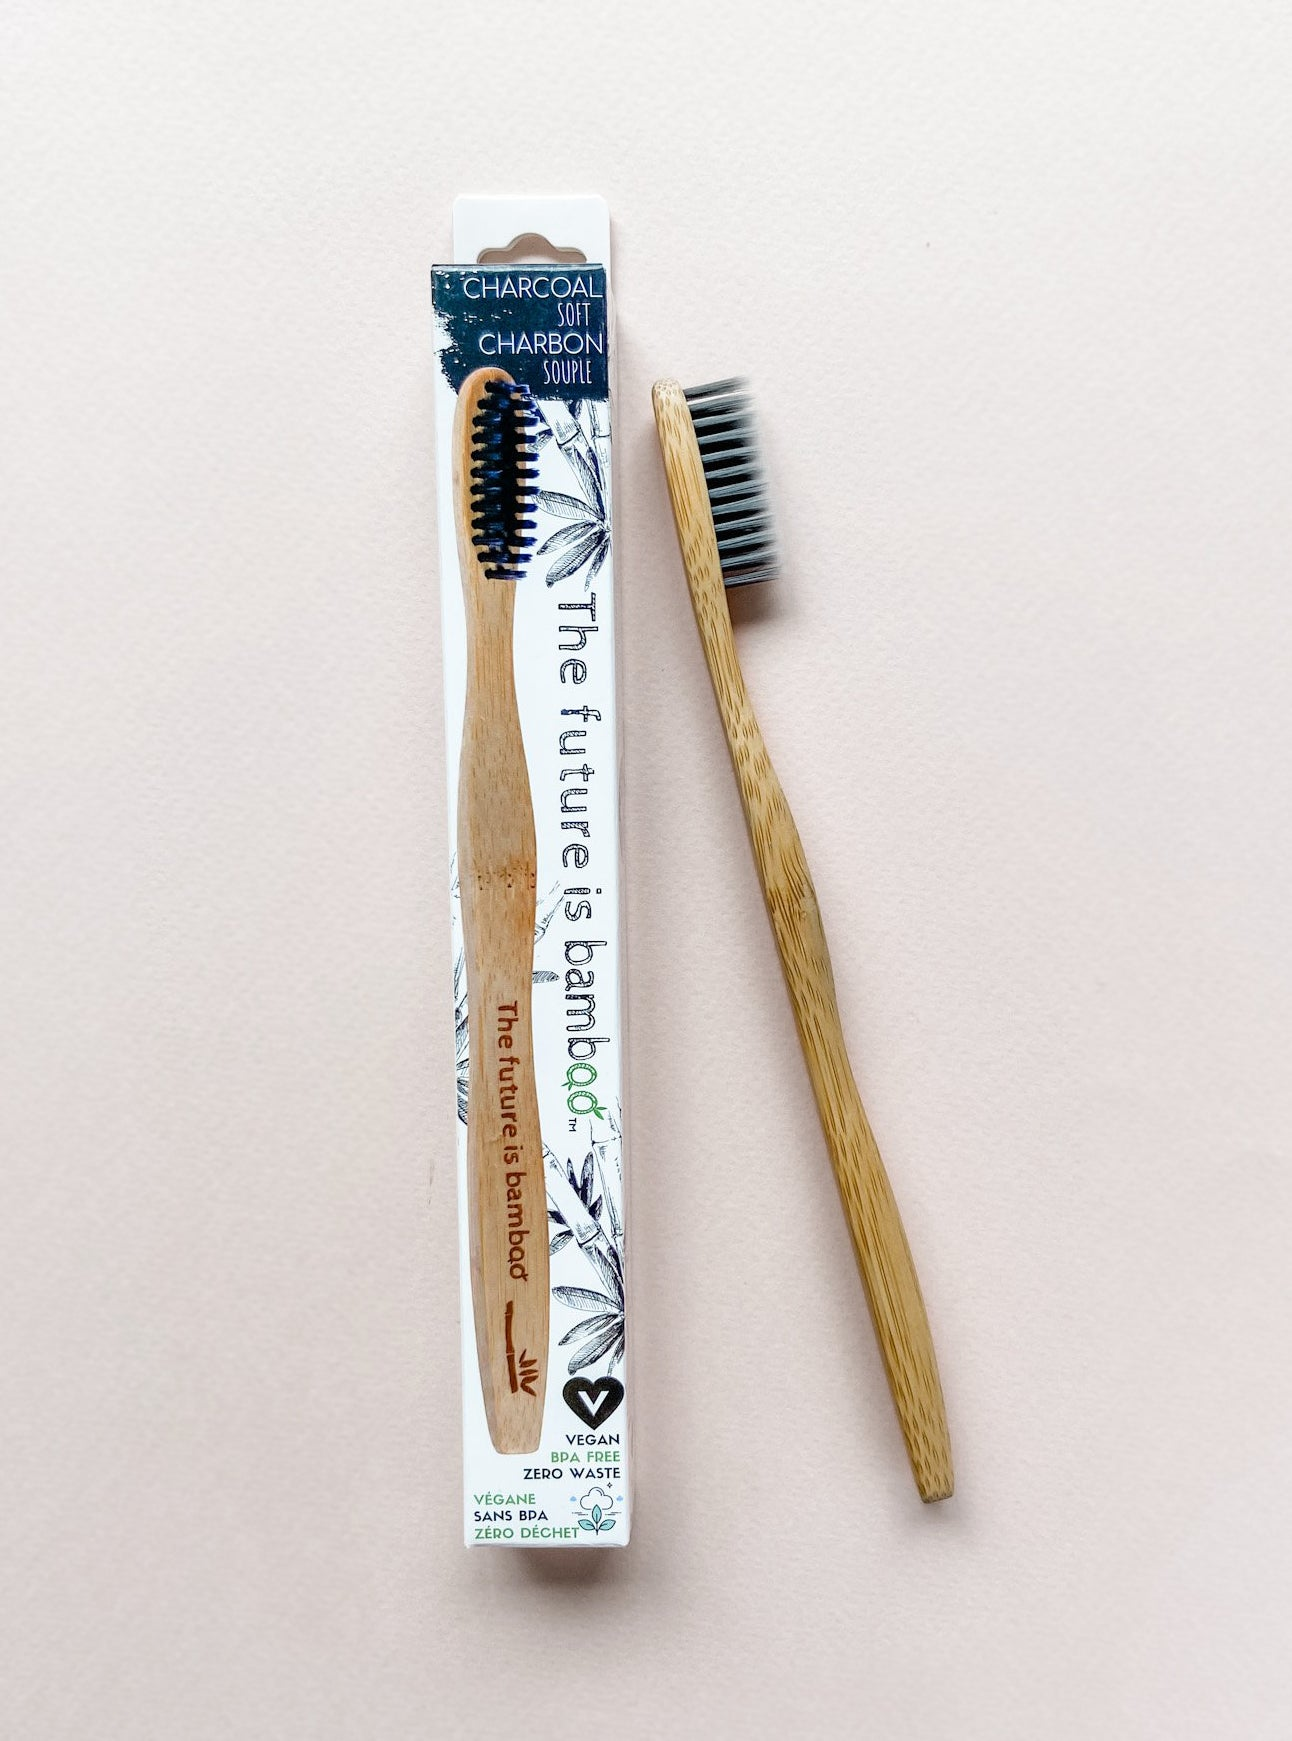 Charcoal Toothbrush (1 piece)